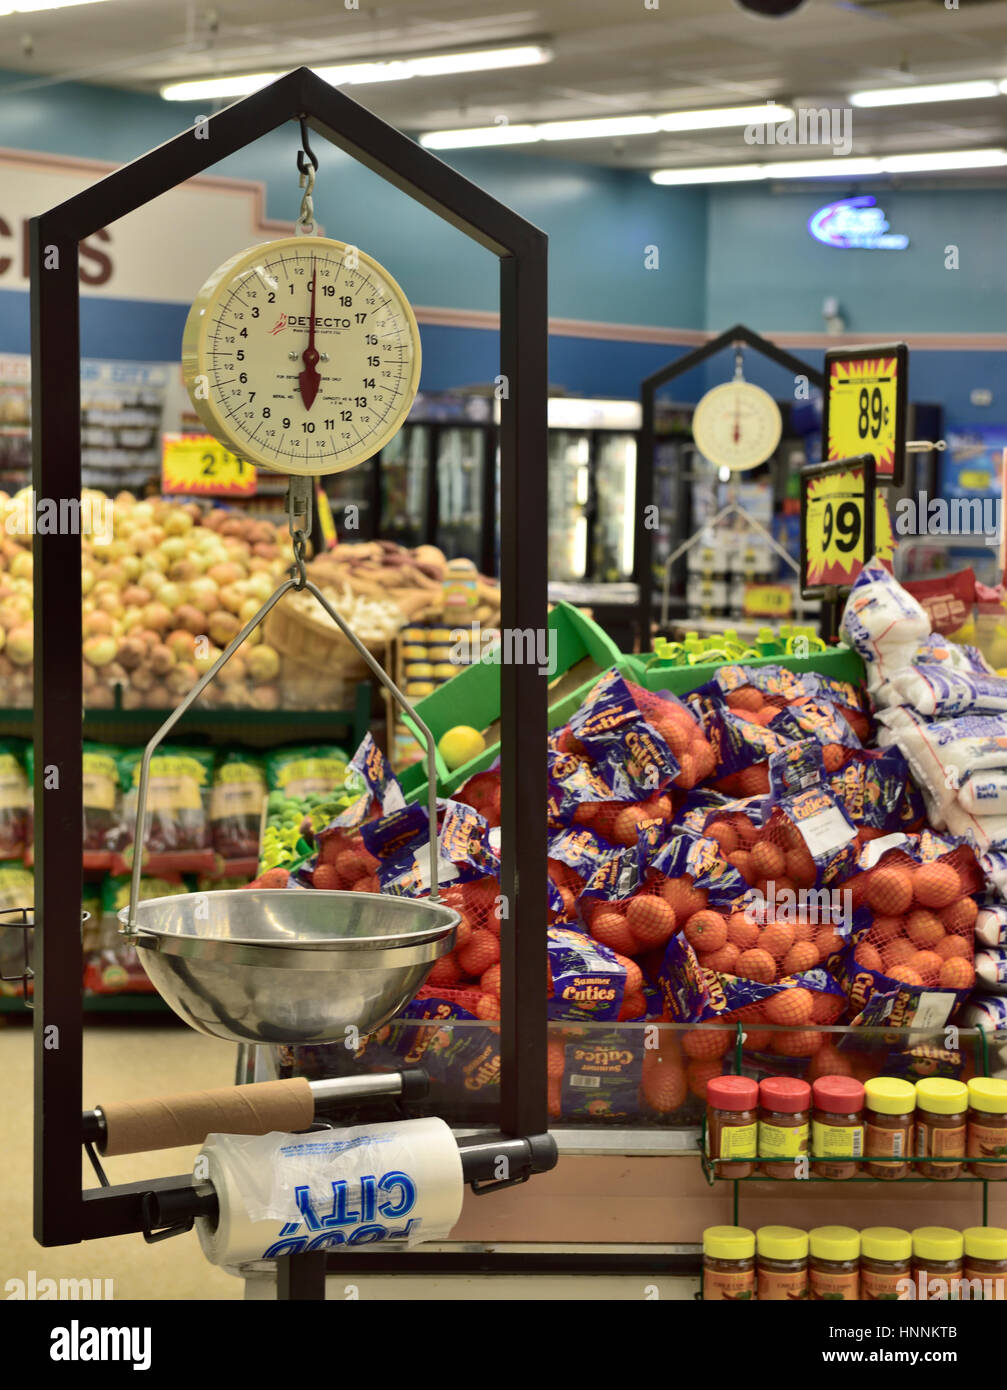 Weighing scales handing with roll of plastic bags in produce section Arizona supermarket, USA - Stock Image